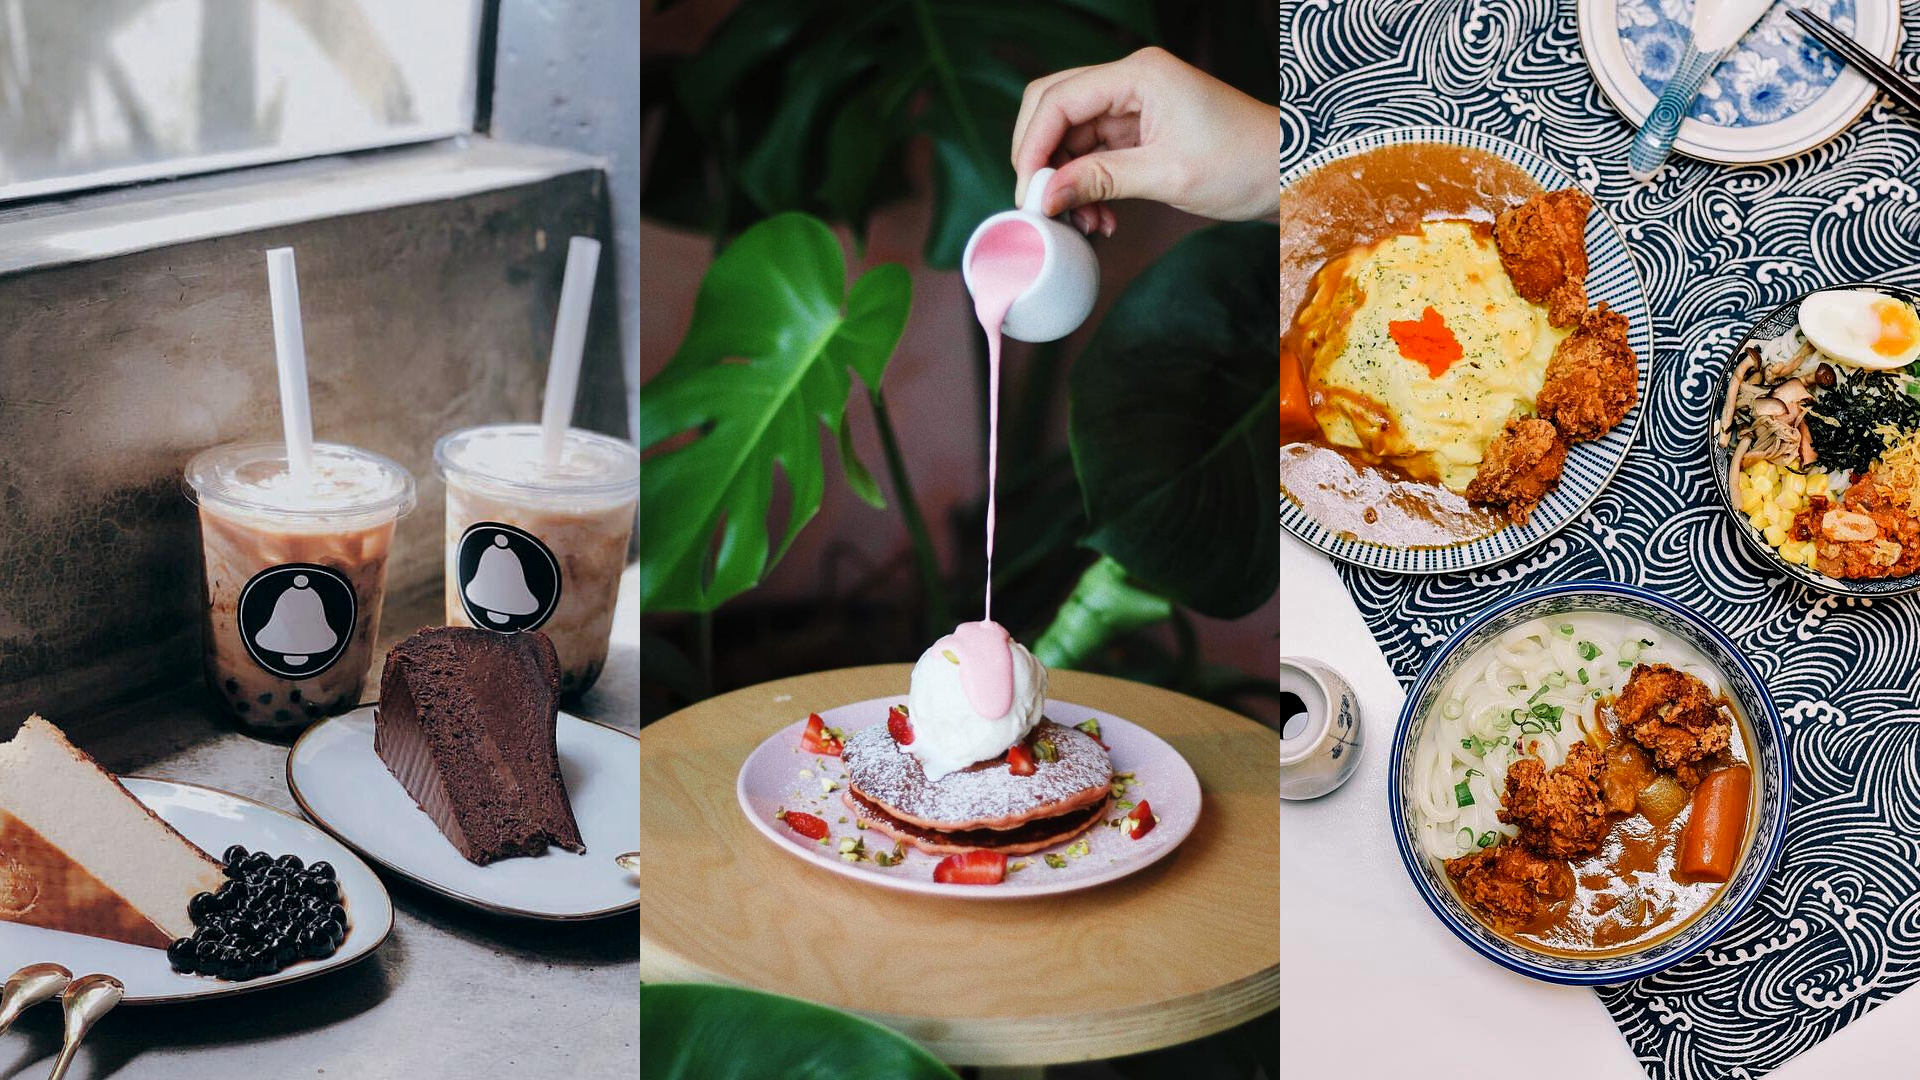 10 Trendy Penang Cafes Serving Some Great Aesthetics And Even Better Food